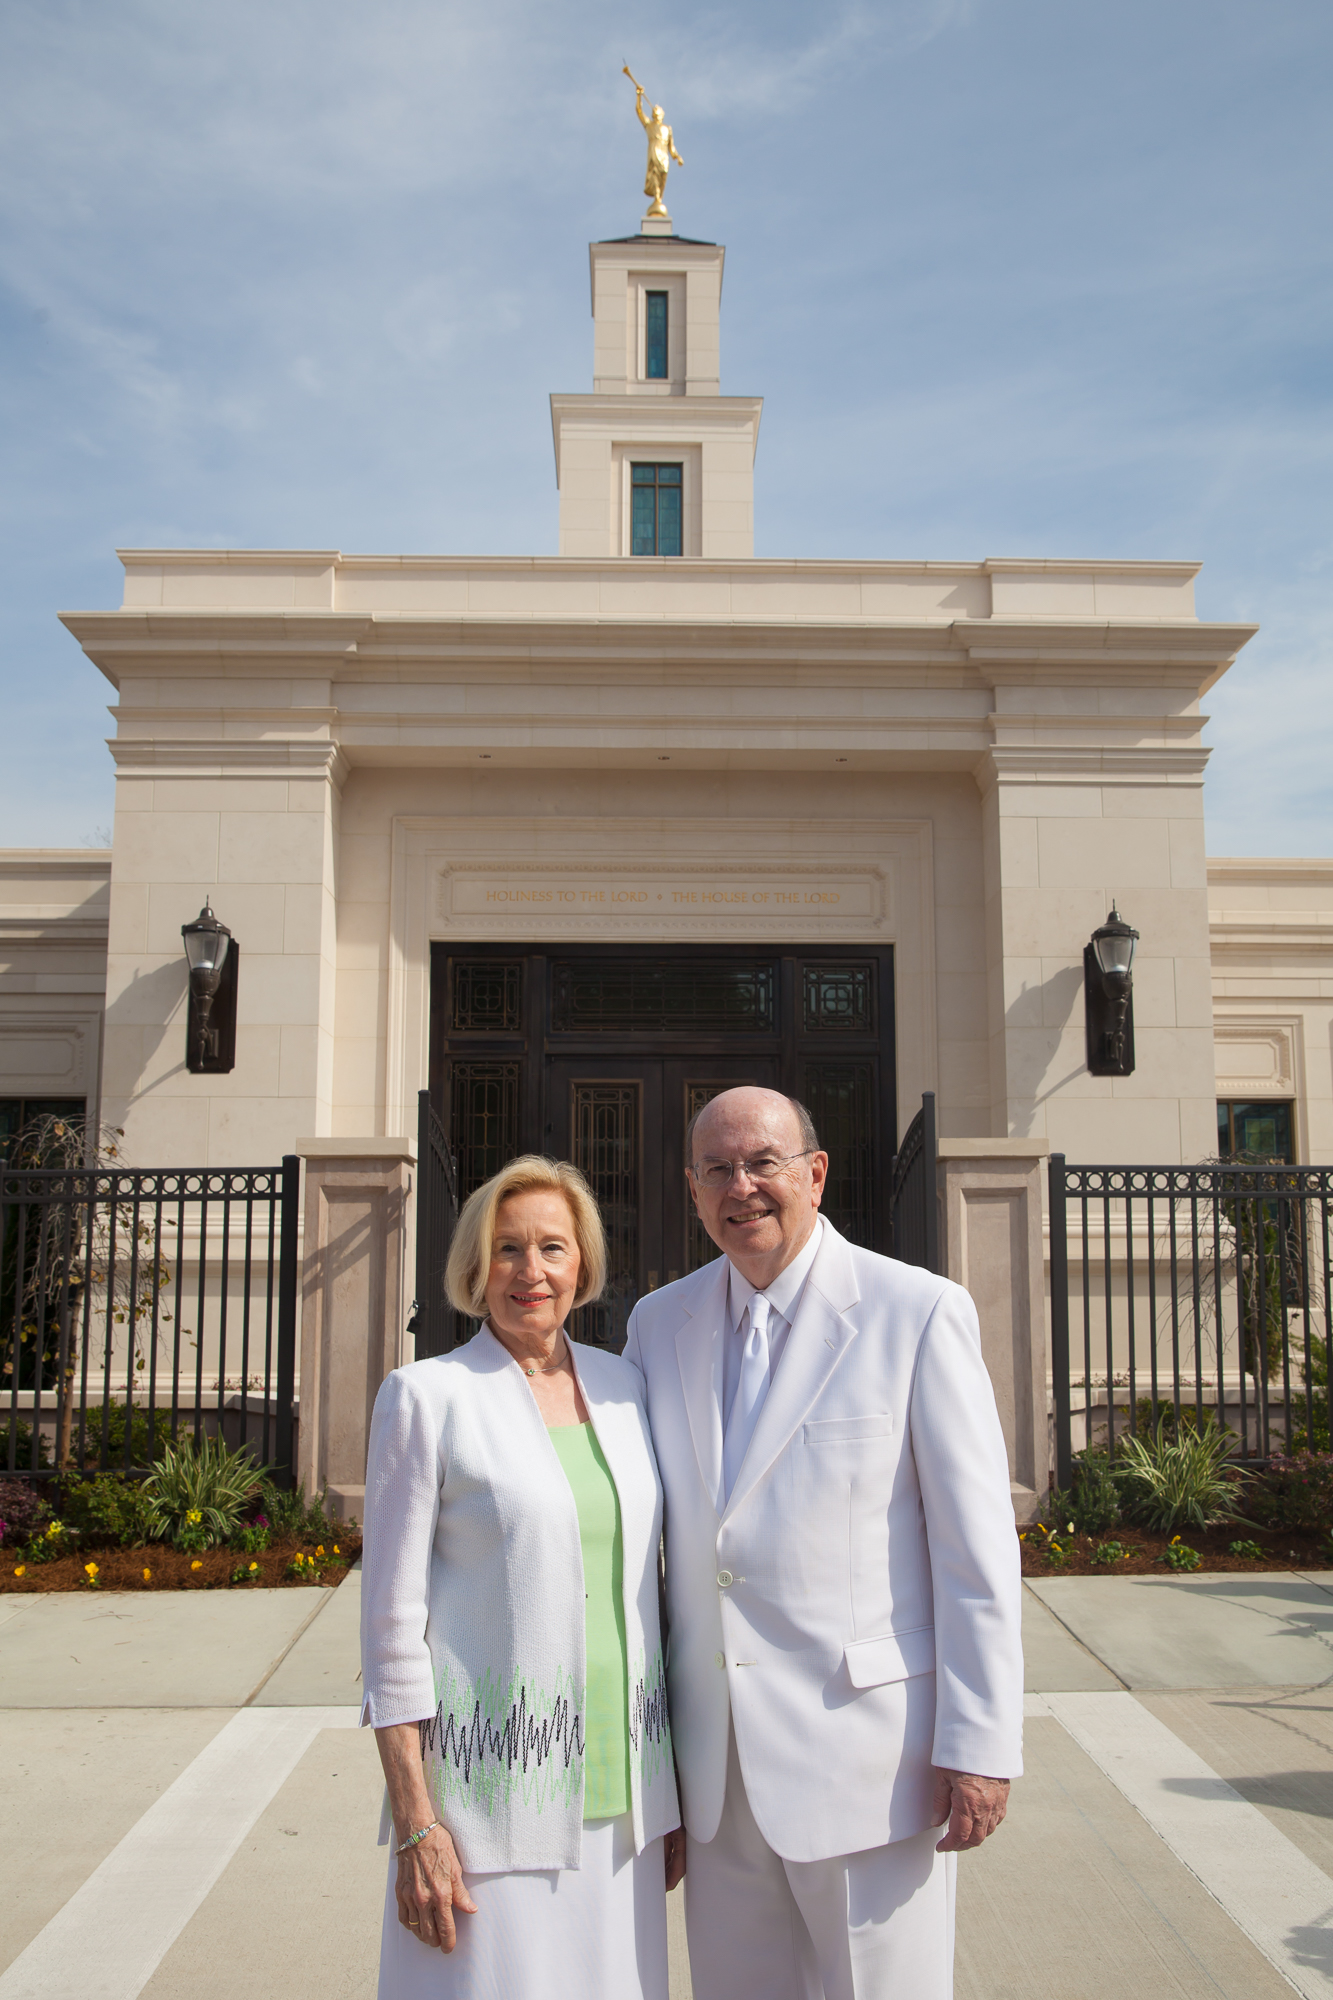 Elder Quentin L. Cook of the Quorum of the Twelve Apostles, with his wife, Sister Mary Cook, stand in front of the Baton Rouge Louisiana Temple after its rededication on Sunday, Nov. 17, 2019.